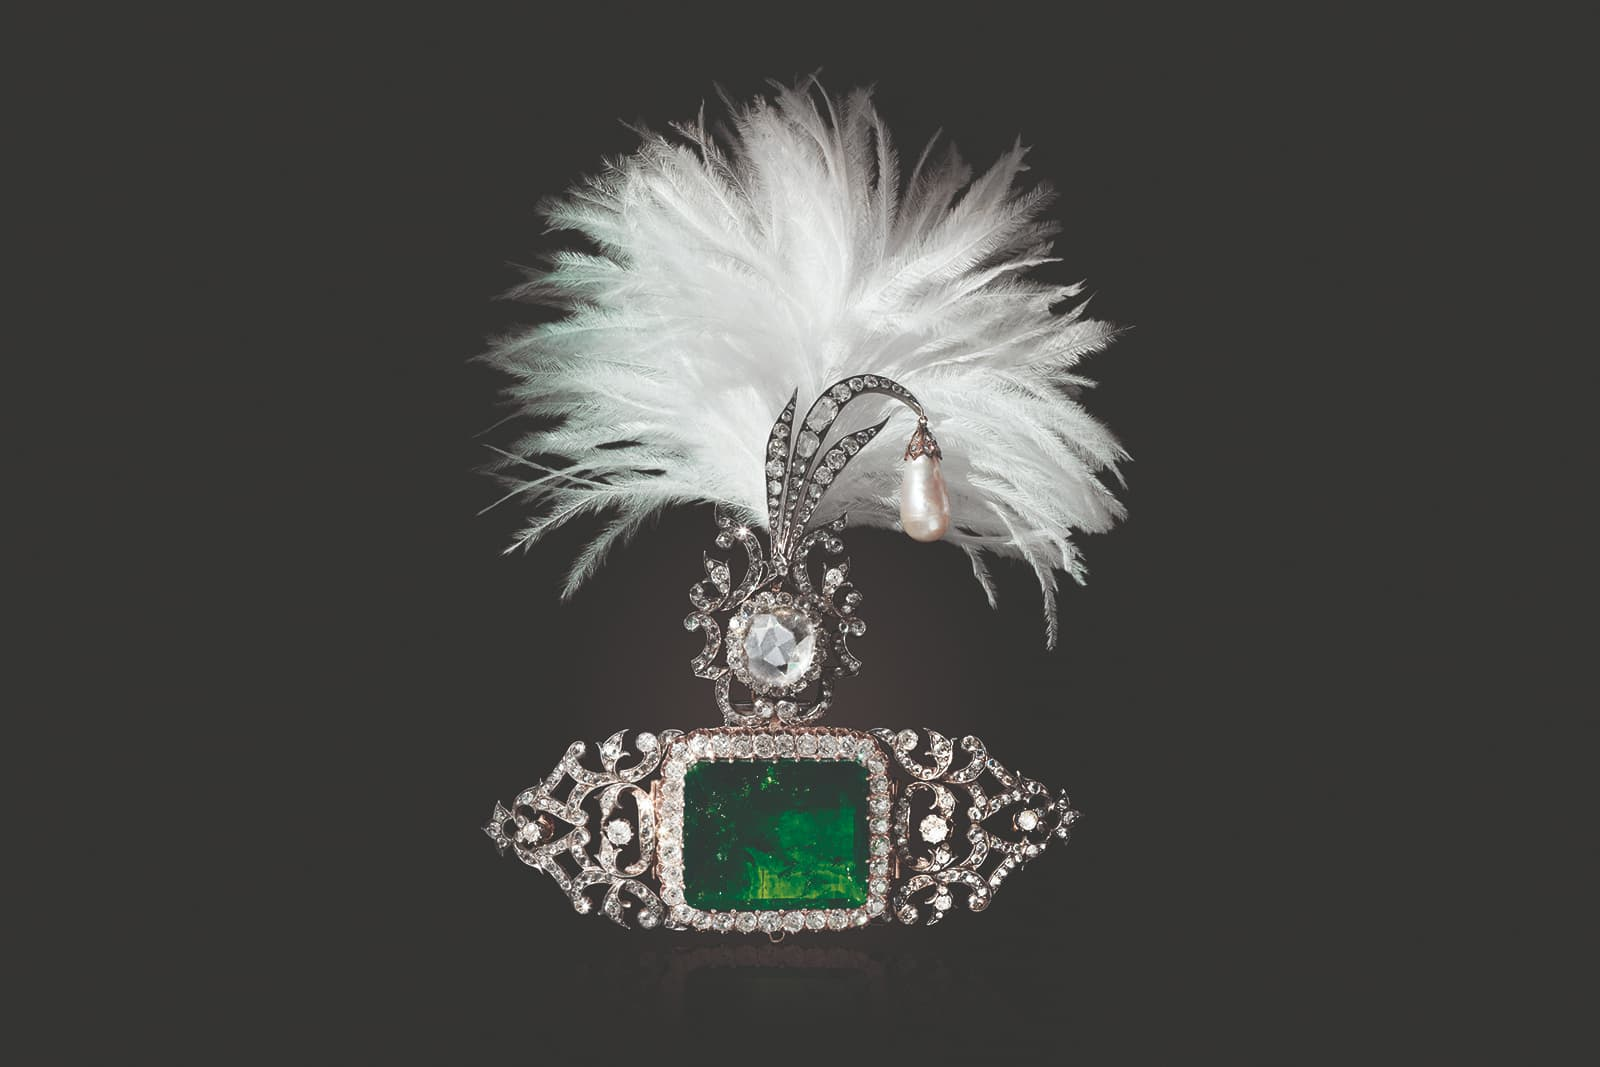 Christie's 'Maharajas & Mughal Magnificence' sarpech adapted by Cartier, with emerald, pearl and diamonds